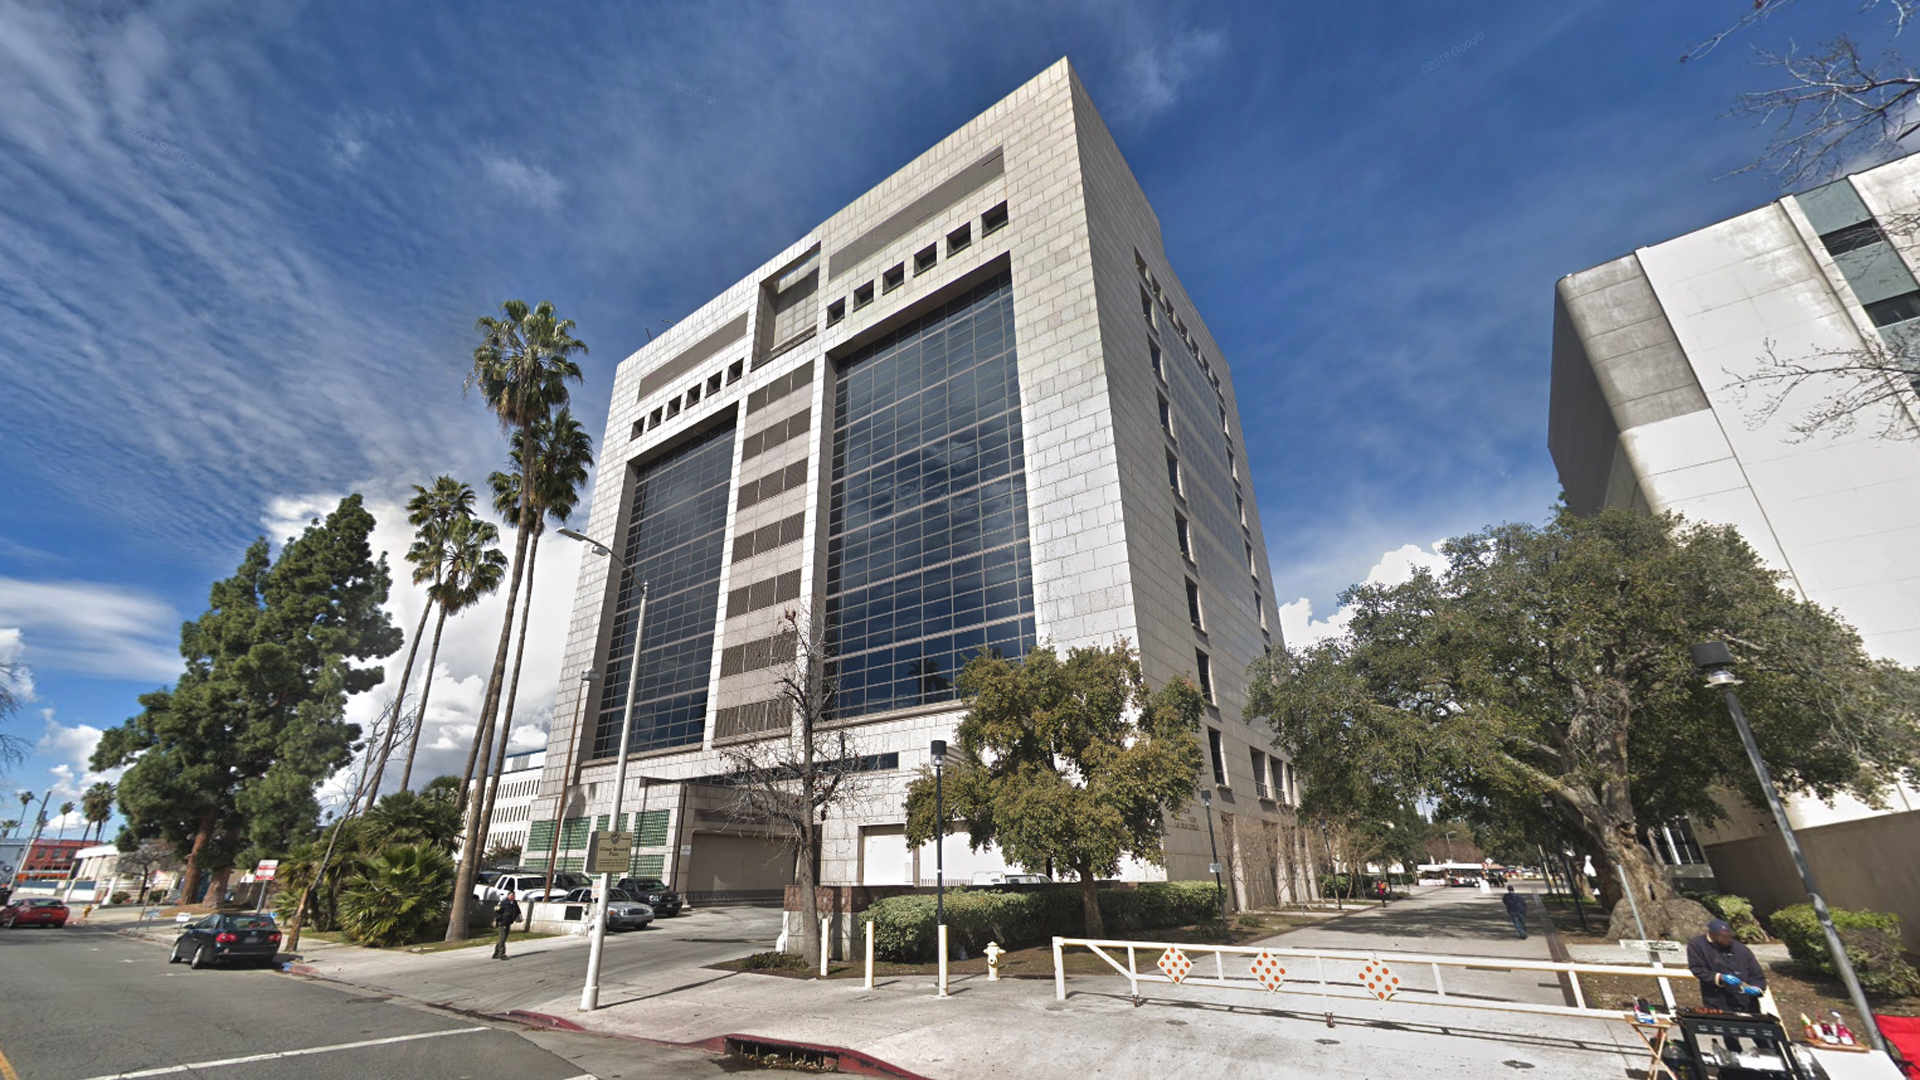 The Van Nuys branch of Los Angeles County Superior Court, 14400 Erwin Street in Van Nuys, as viewed in a Google Street View image in February of 2019.